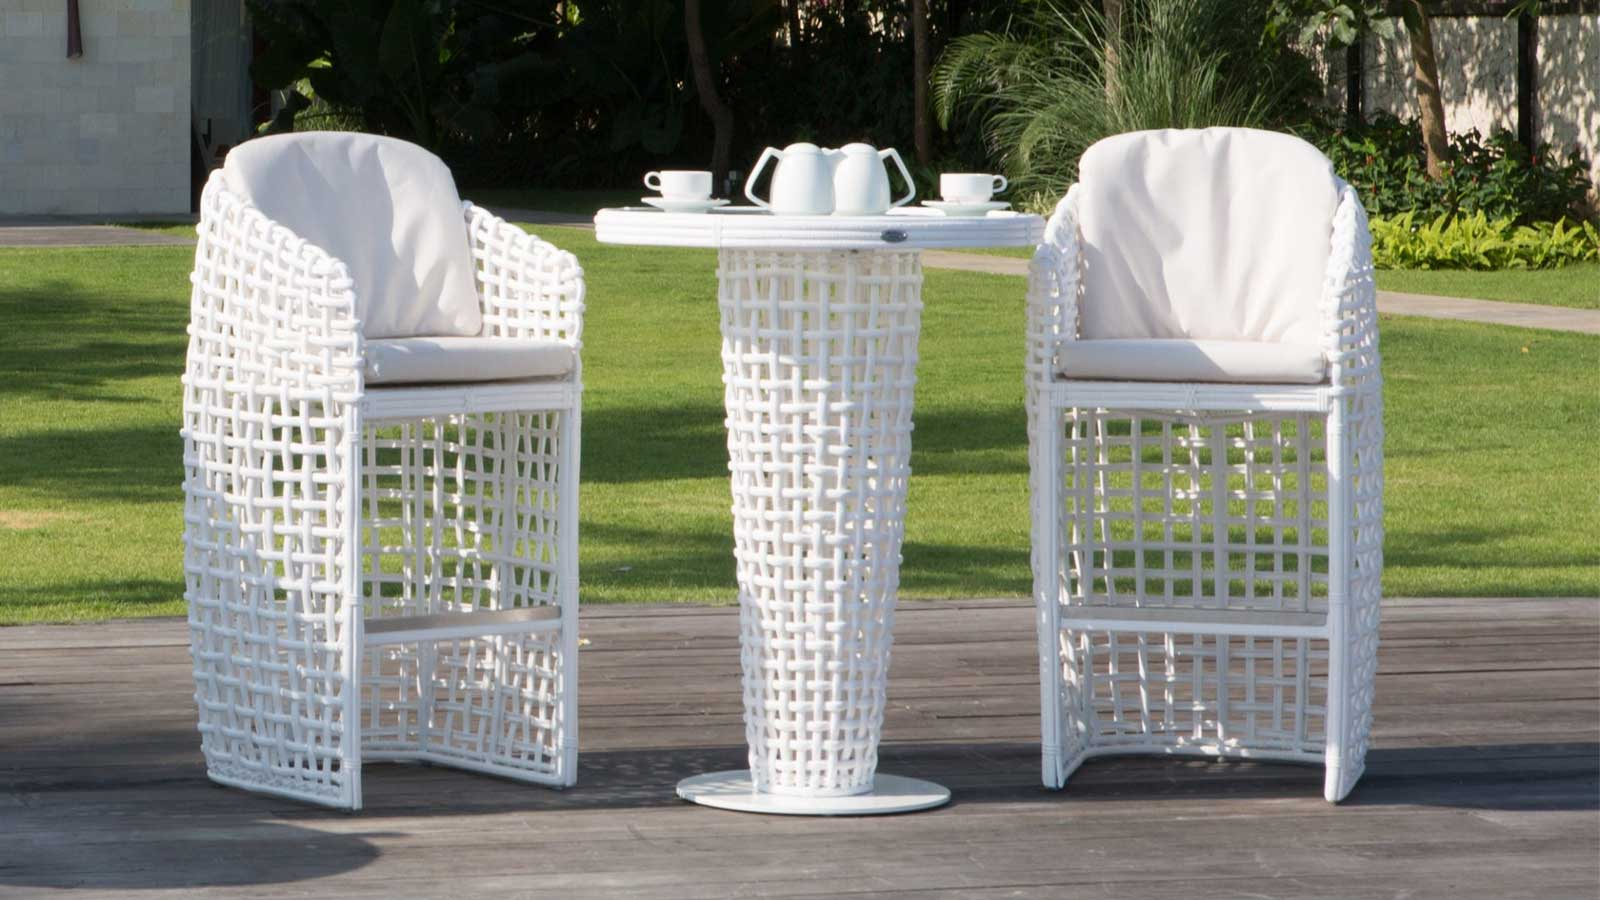 Phenomenal Outdoor Hospitality Sas Best Core Furniture Online Home Remodeling Inspirations Propsscottssportslandcom